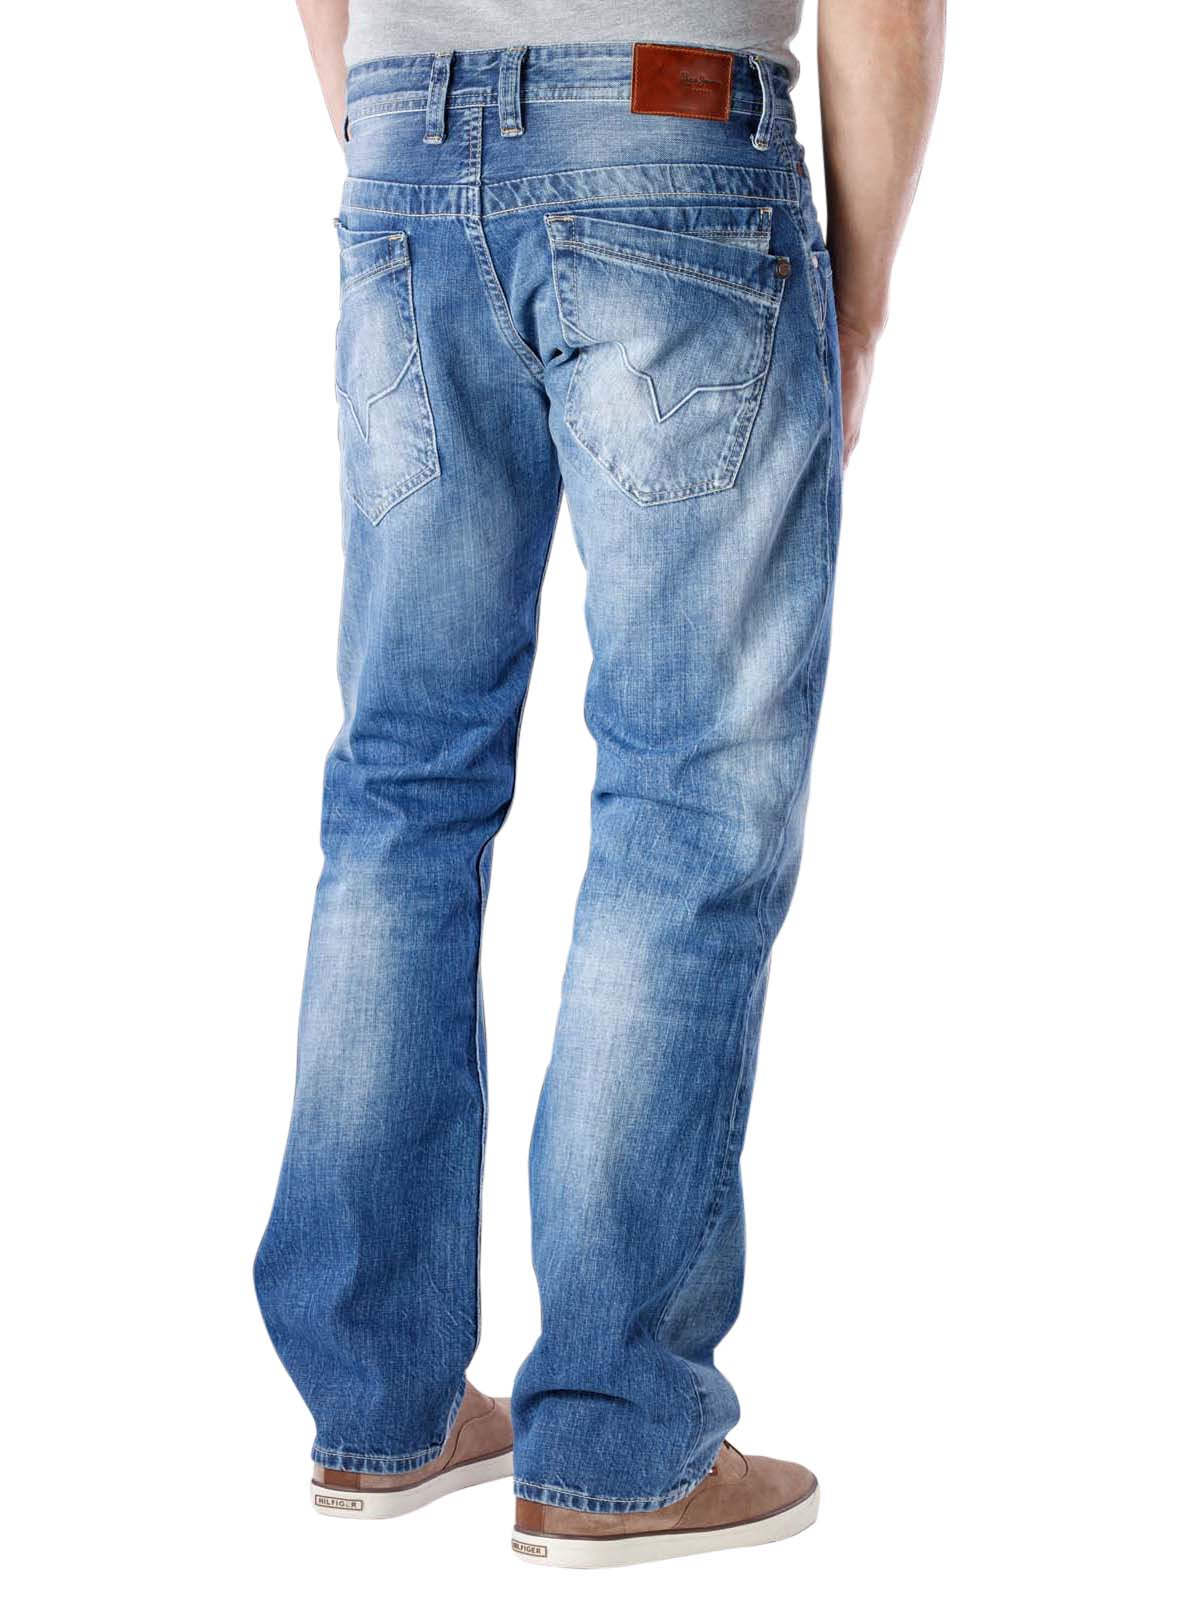 6a84f2fb2a7 Fast Delivery | Pepe Jeans Jeanius Relaxed Fit N56 ... - McJeans.ch